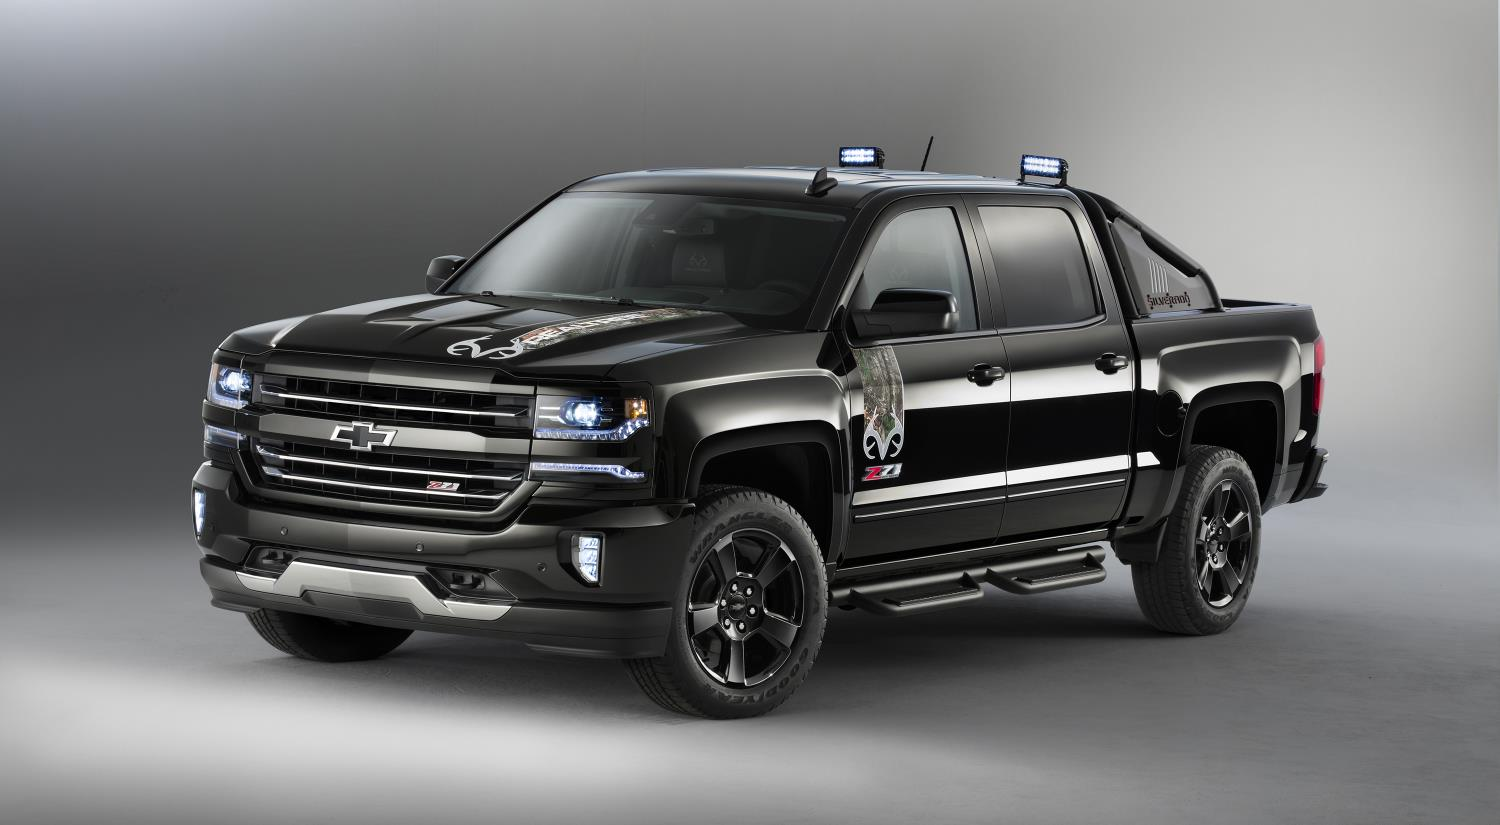 Chevy Reaper Price >> 2016 Chevrolet Silverado Rally Edition Debuts at Texas Motor Speedway - autoevolution